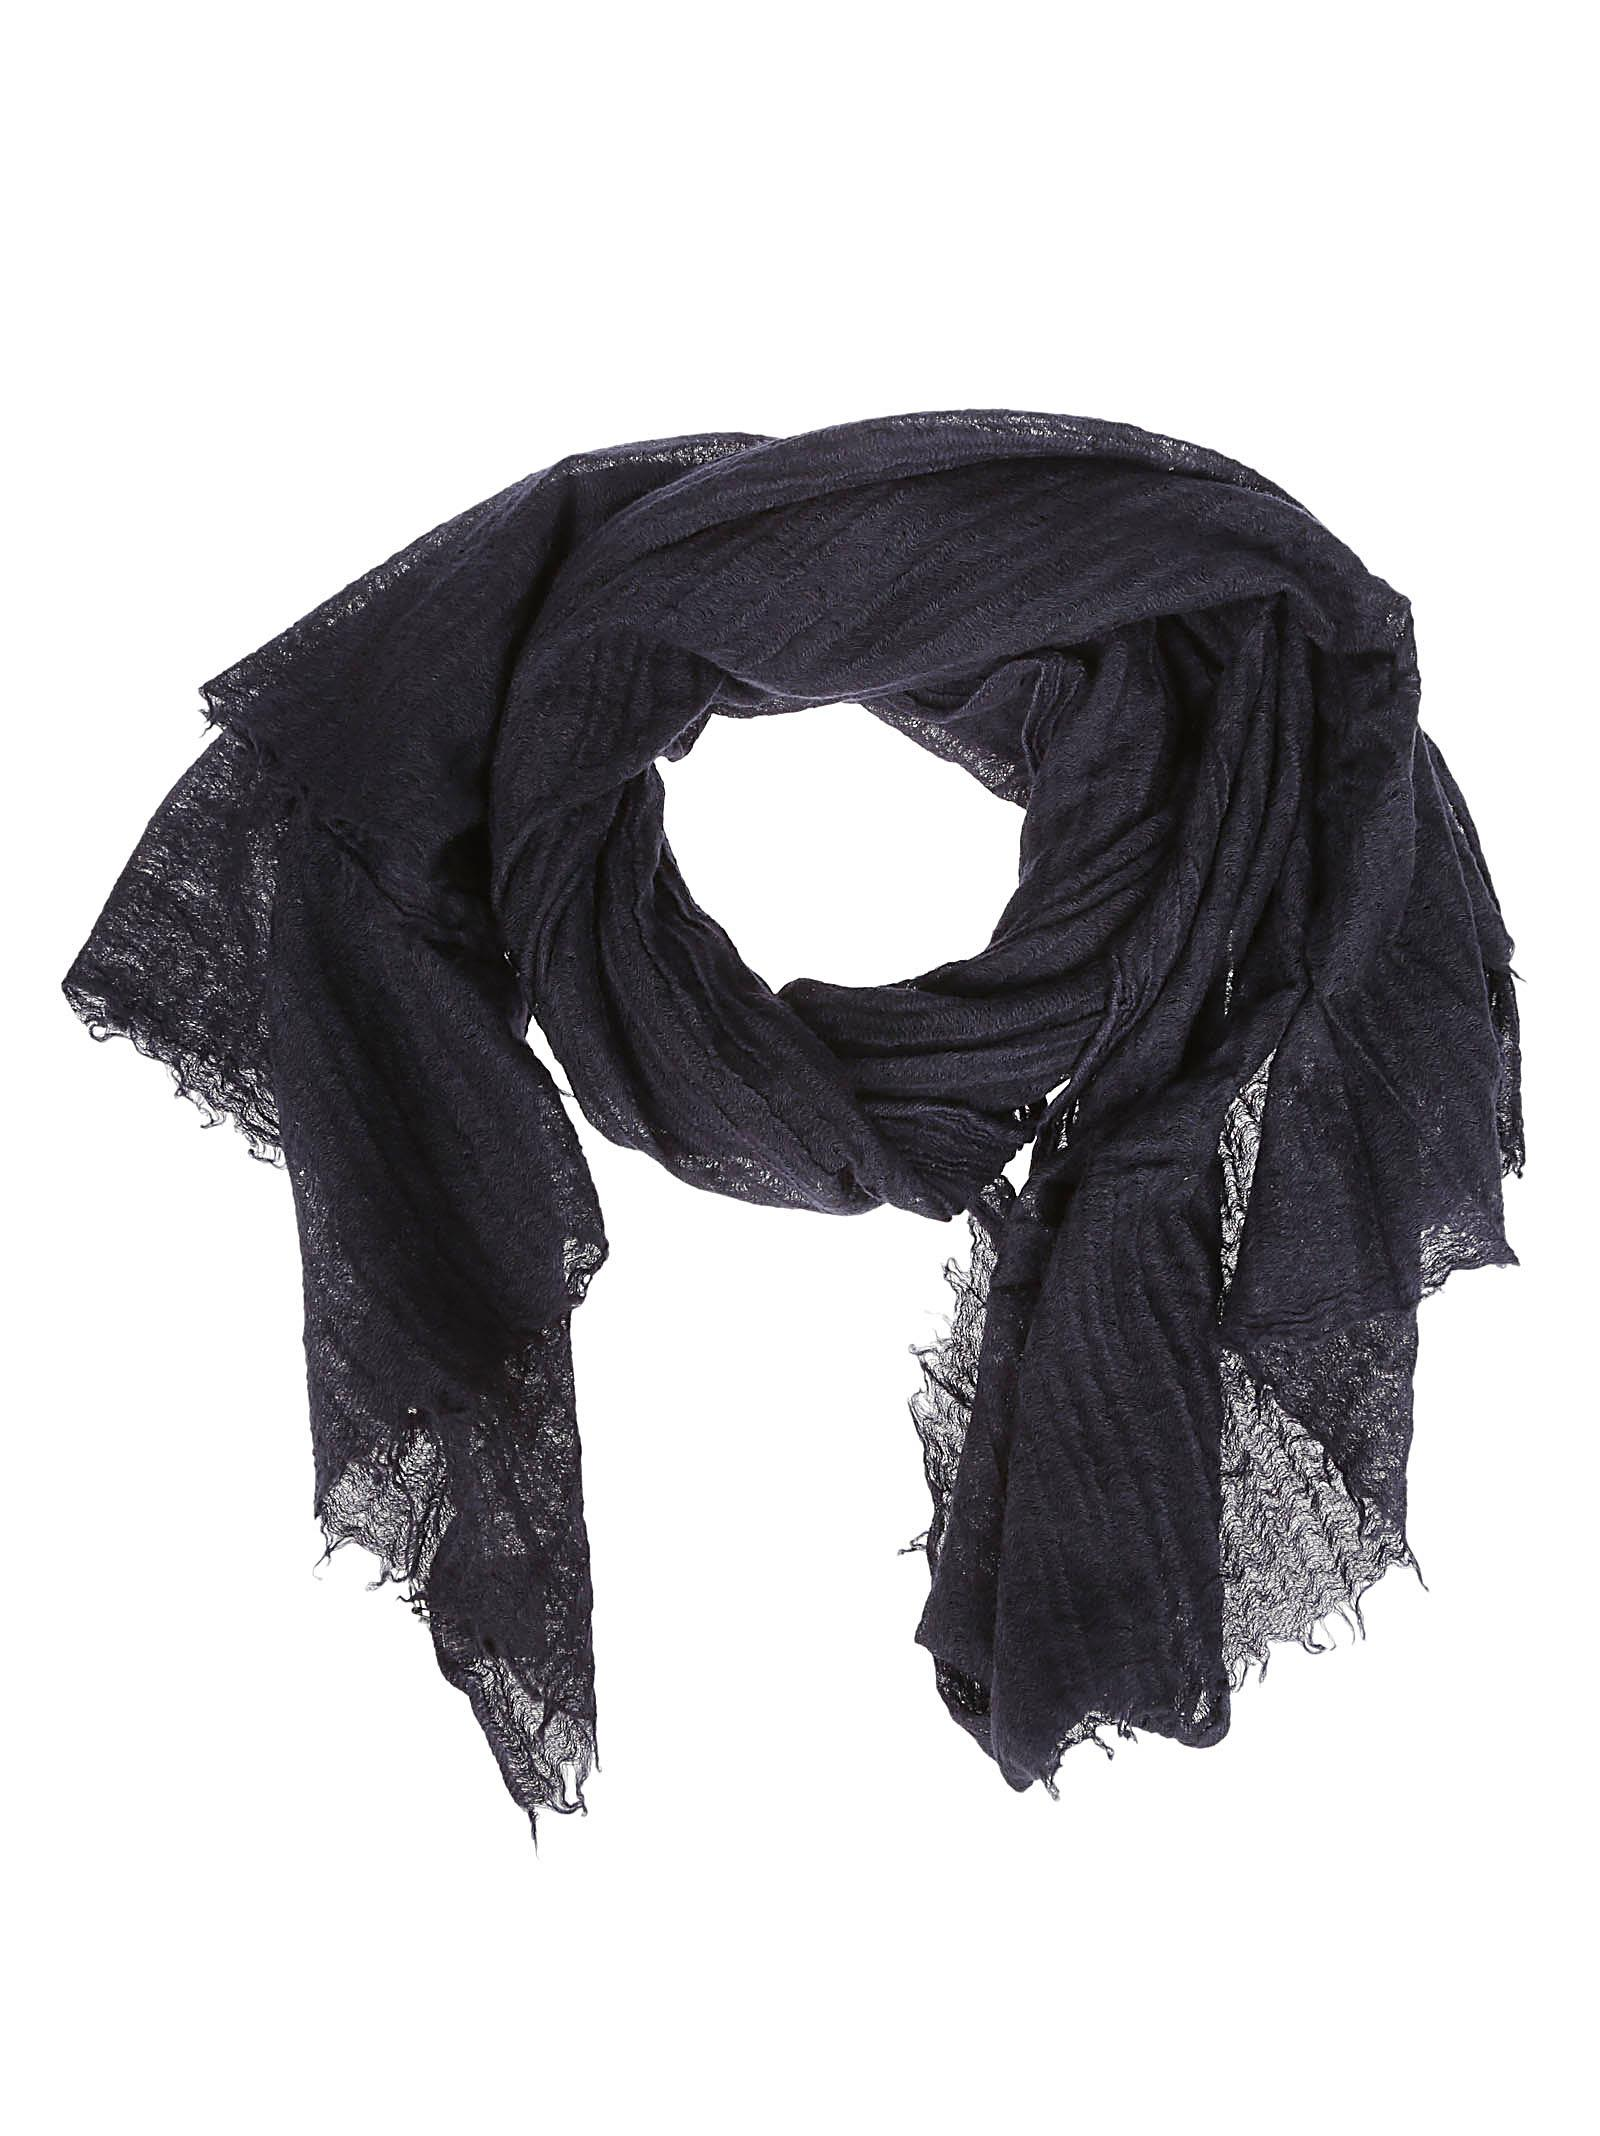 DESTIN SURL Destin Frayed Scarf in Black